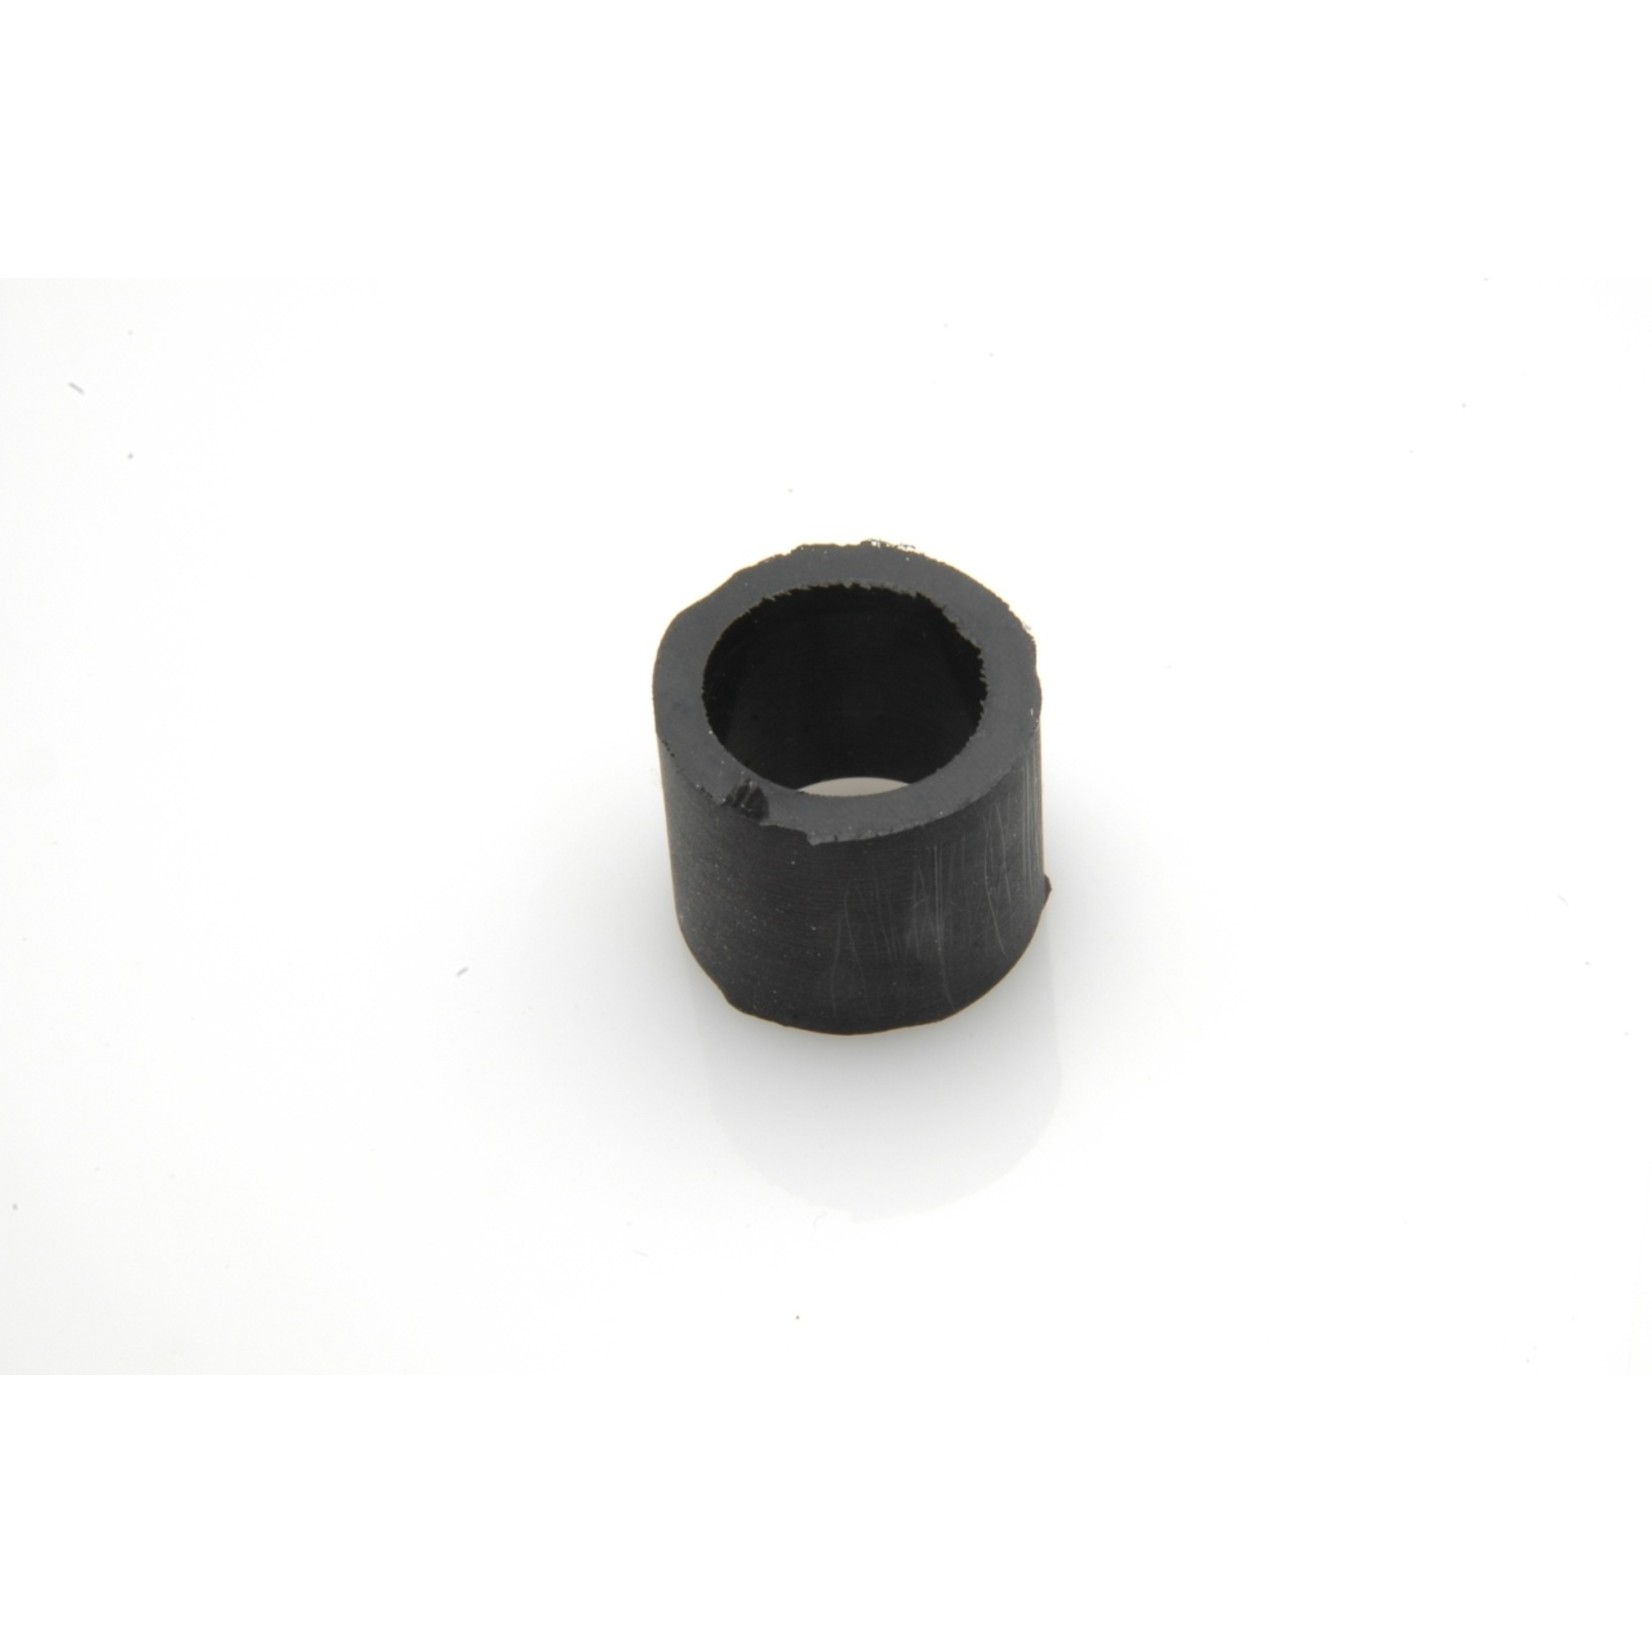 Protection rubber 7 x 14mm Nr Org: 26208079